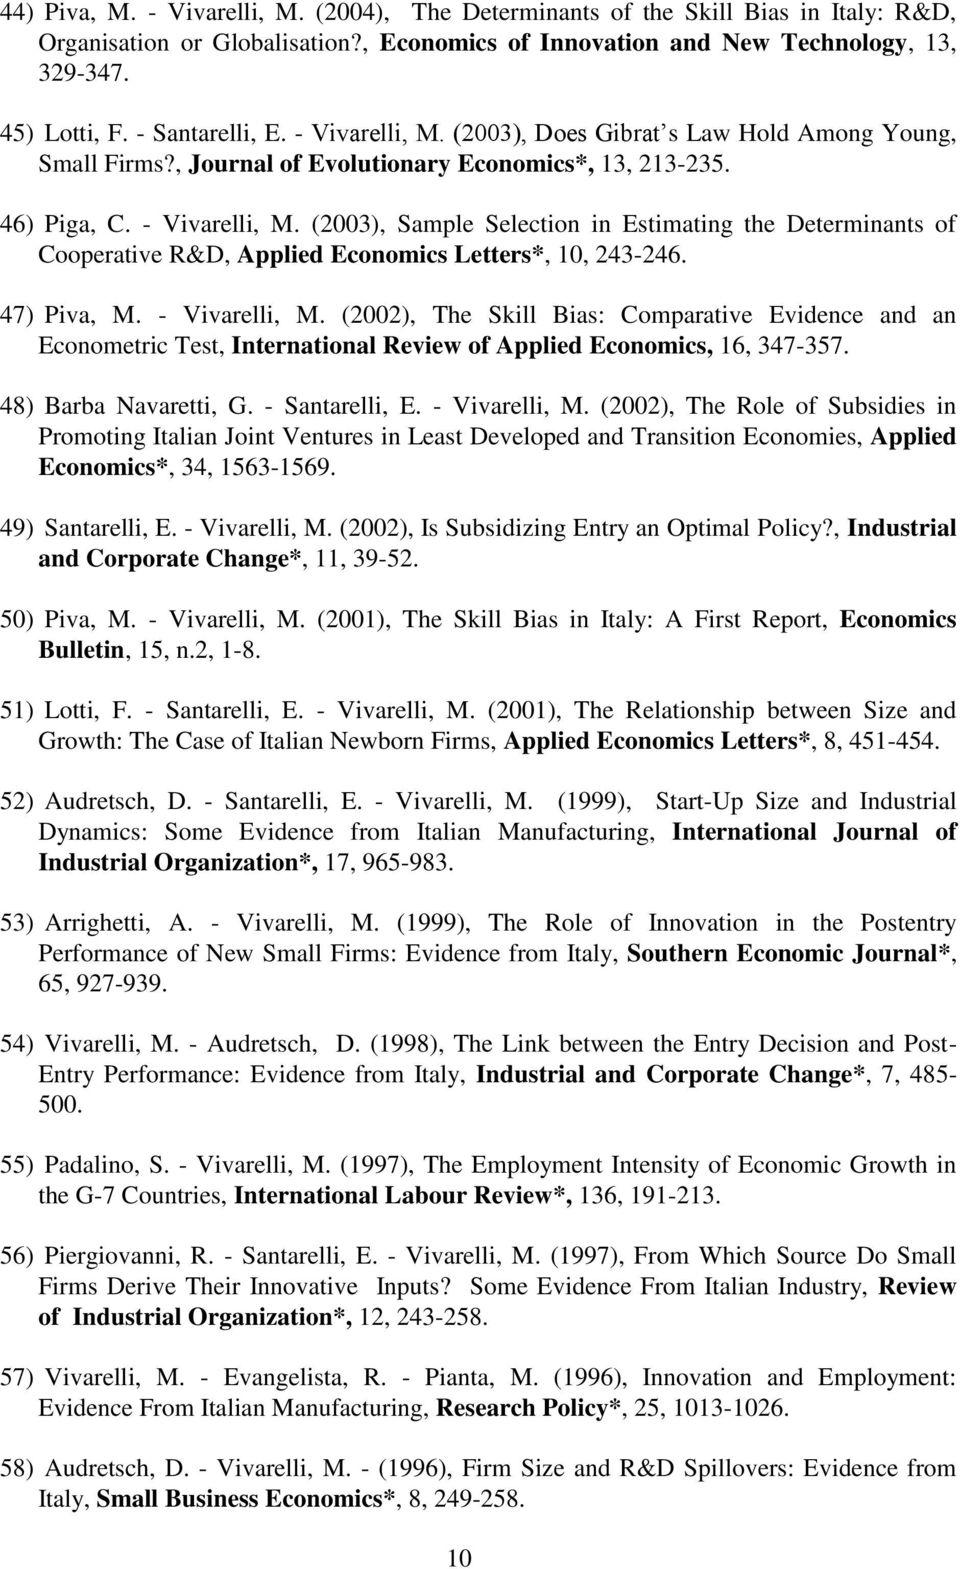 47) Piva, M. - Vivarelli, M. (2002), The Skill Bias: Comparative Evidence and an Econometric Test, International Review of Applied Economics, 16, 347-357. 48) Barba Navaretti, G. - Santarelli, E.